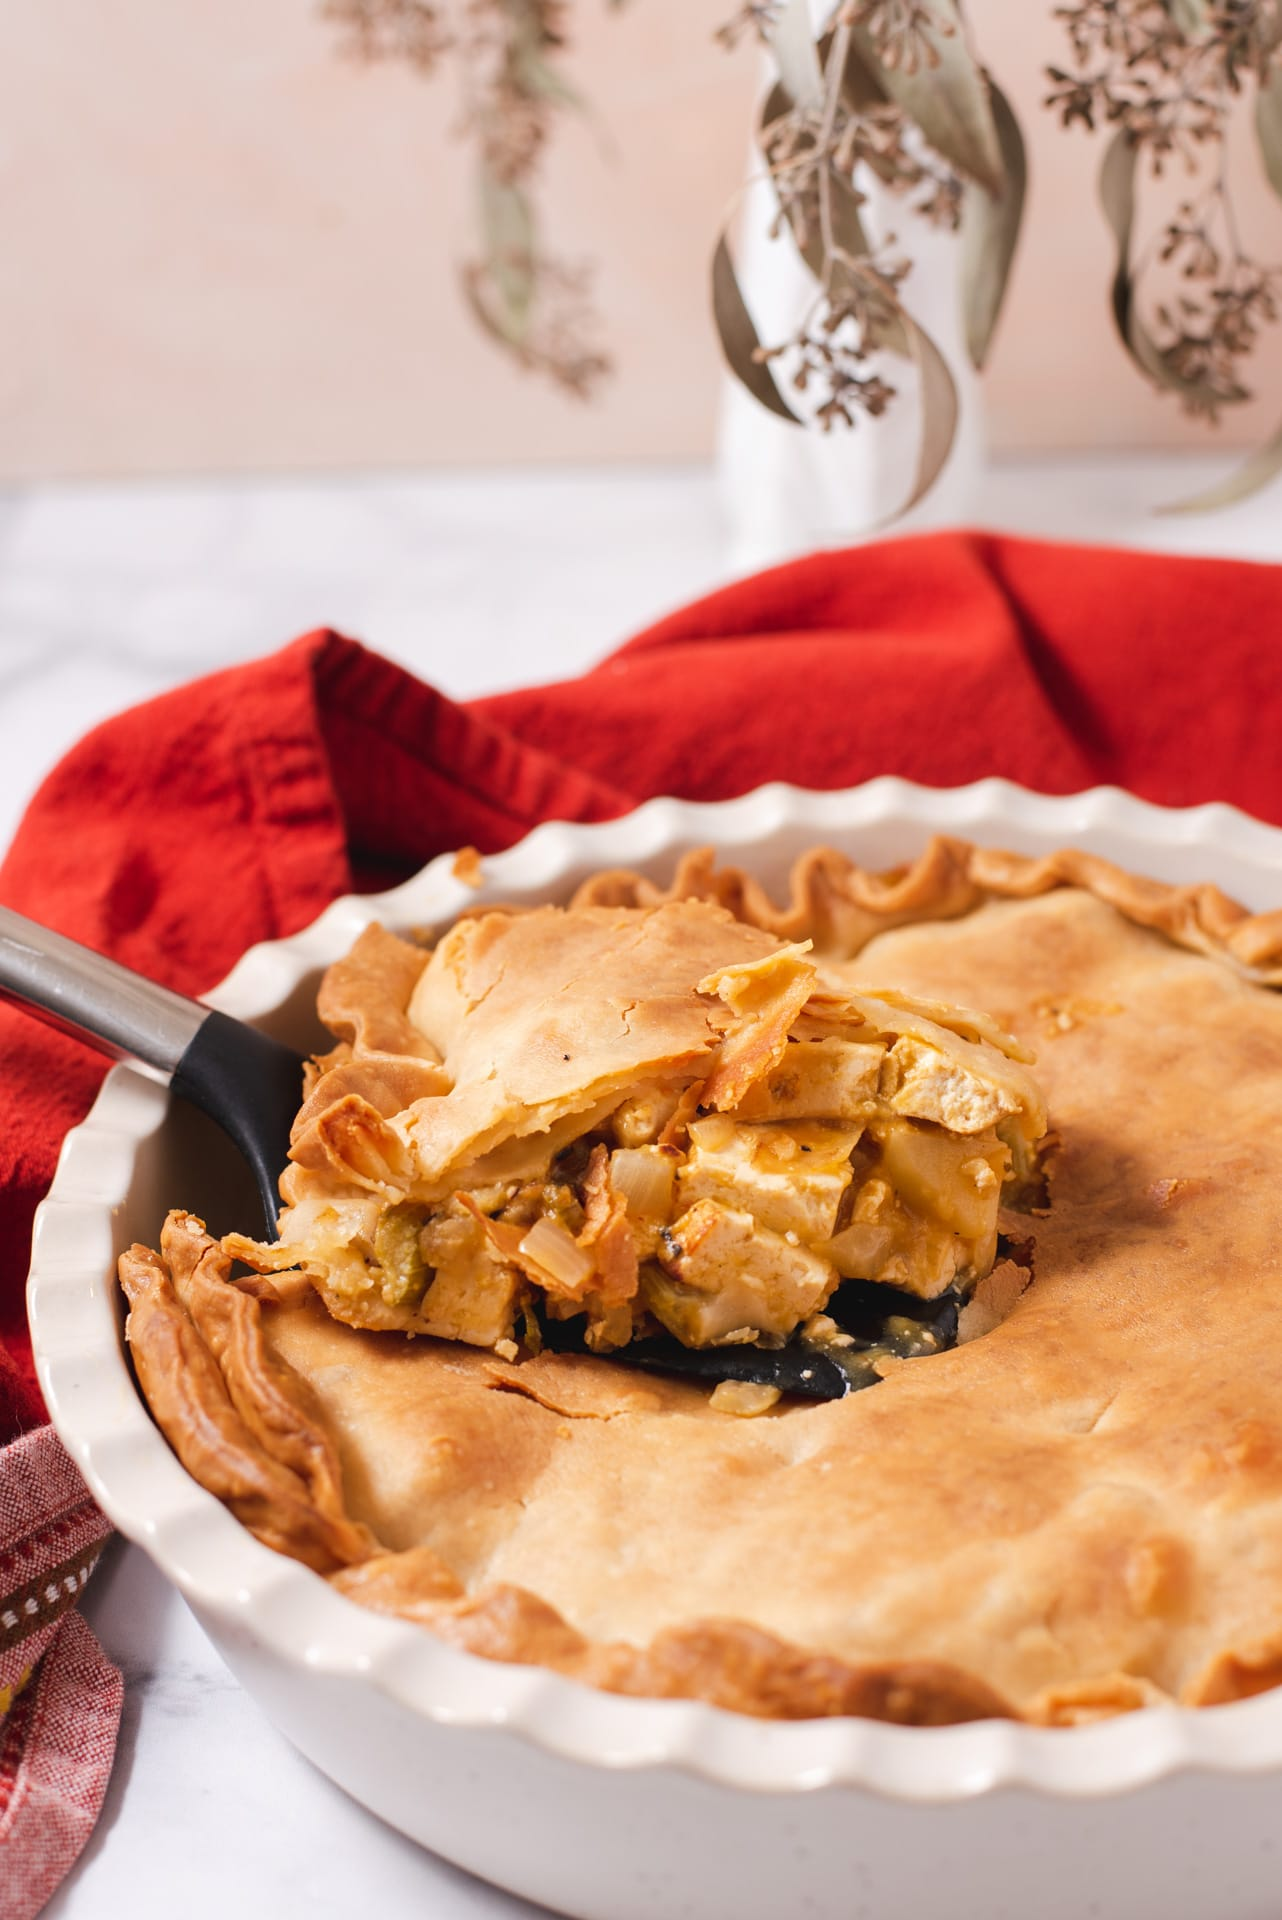 Slice of pot pie being lifting out of a pie dish